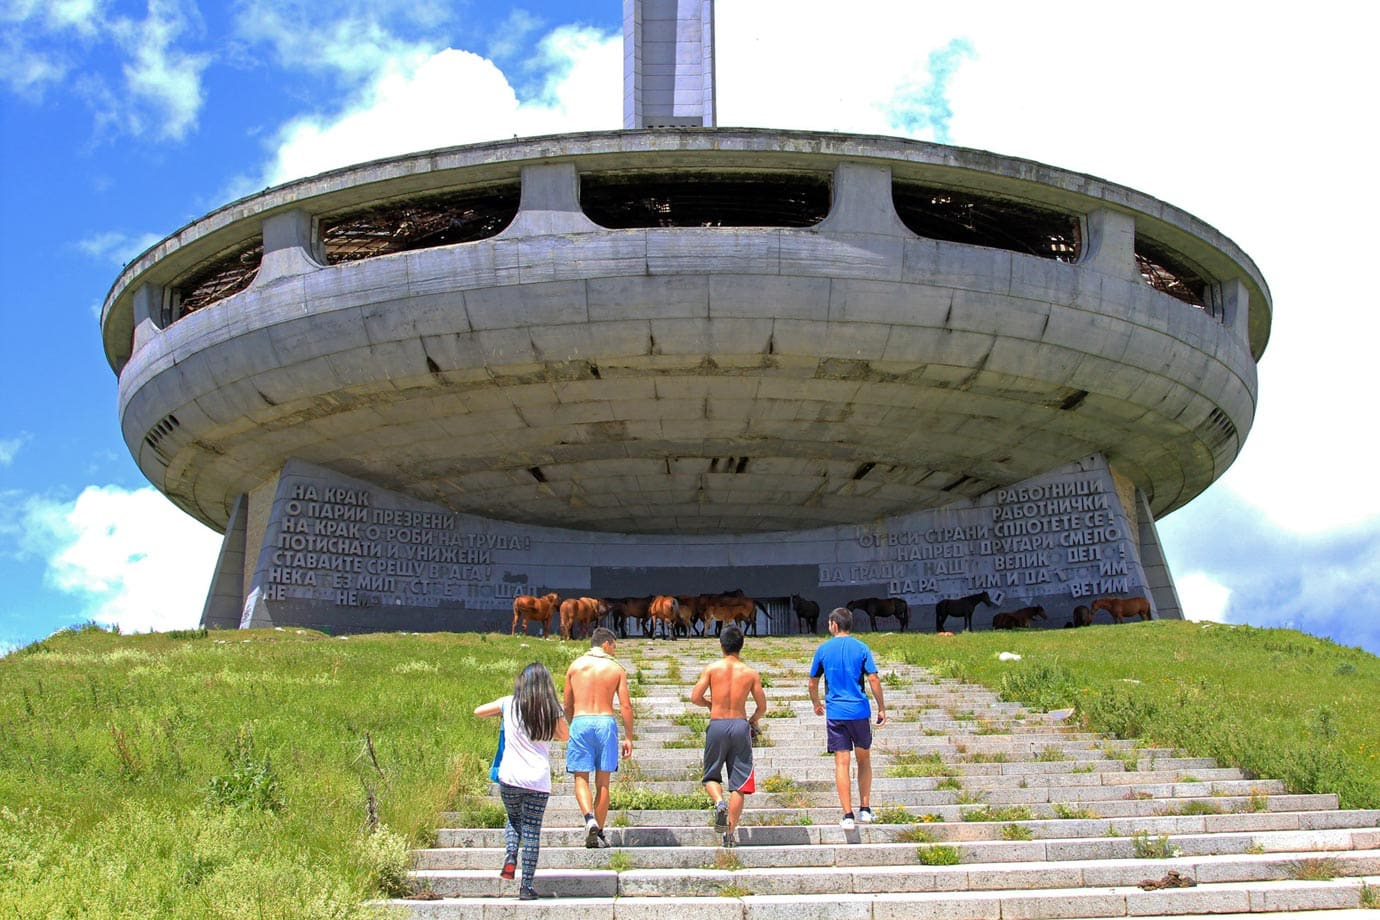 Messages written in giant Cyrillic letters on either side of the main entrance greet you as you walk up the stairs to Buzludzha